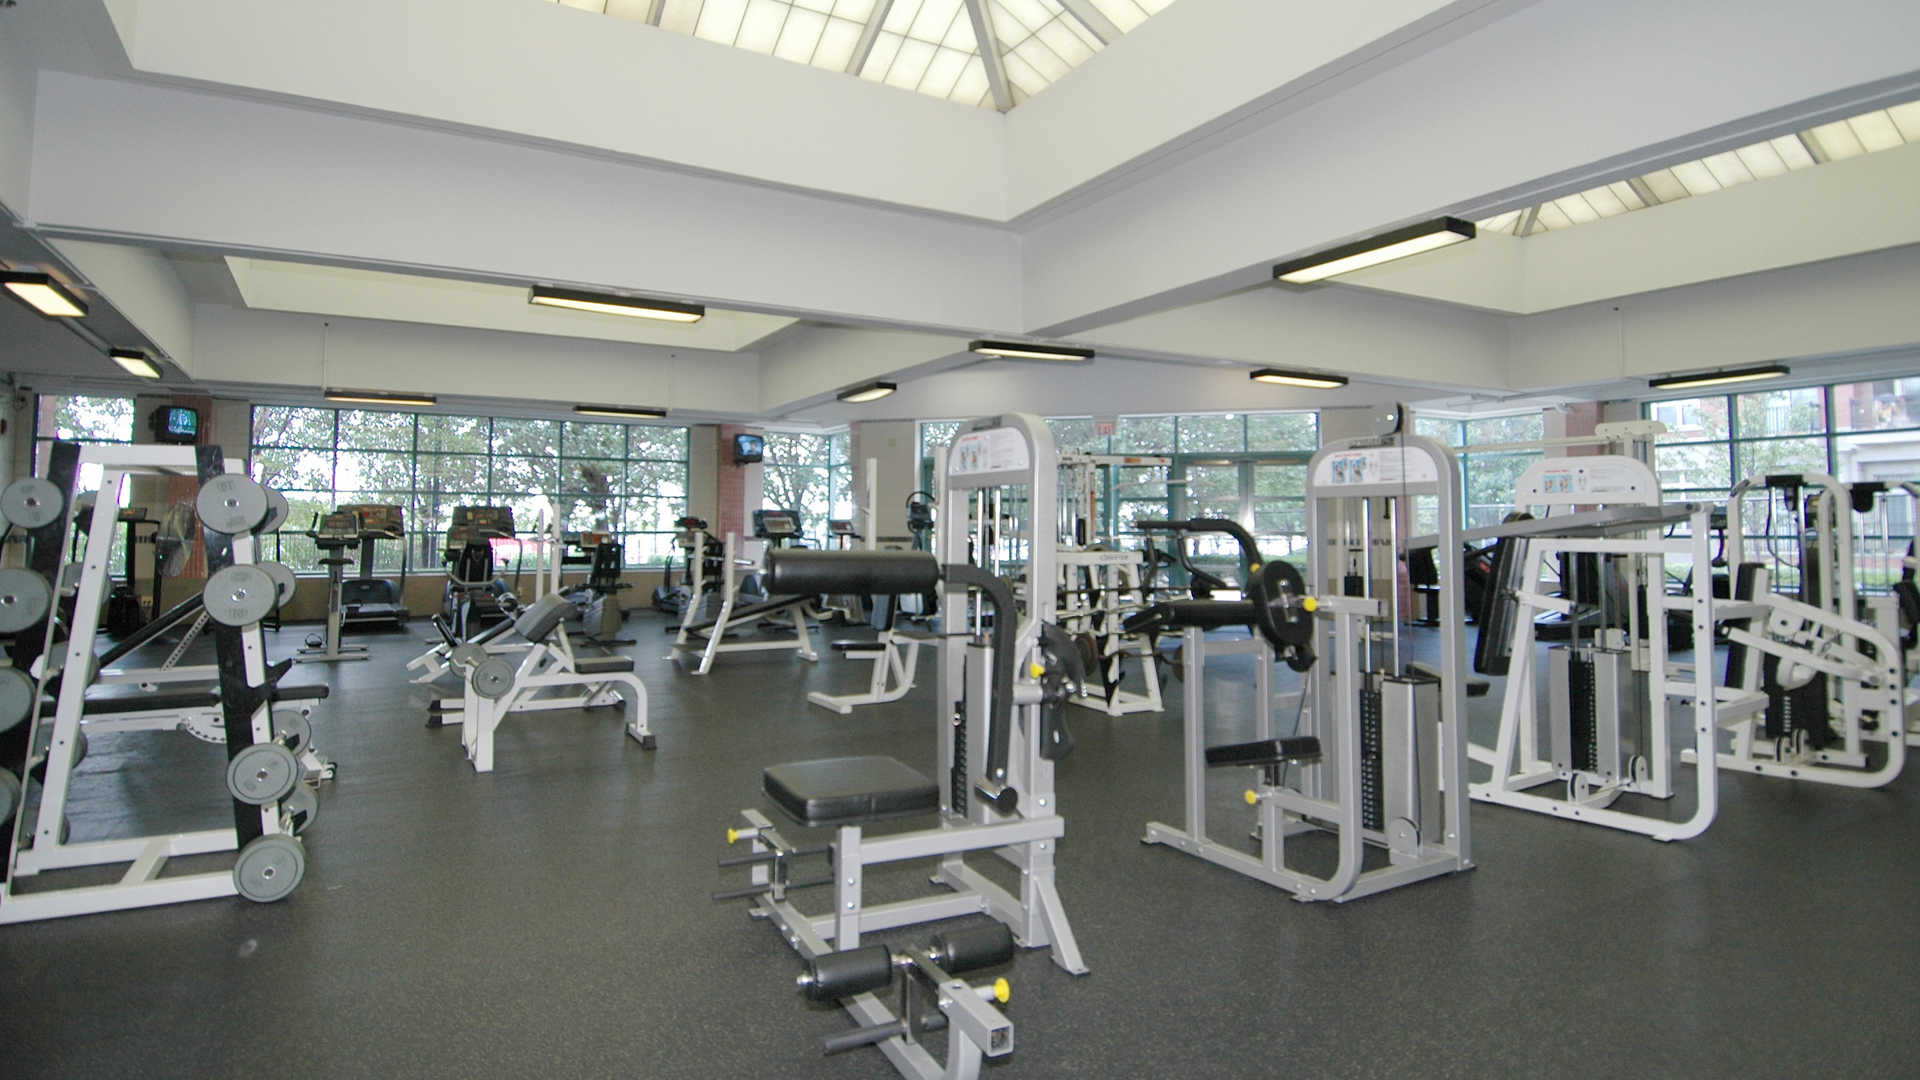 Portside towers apartments fitness center